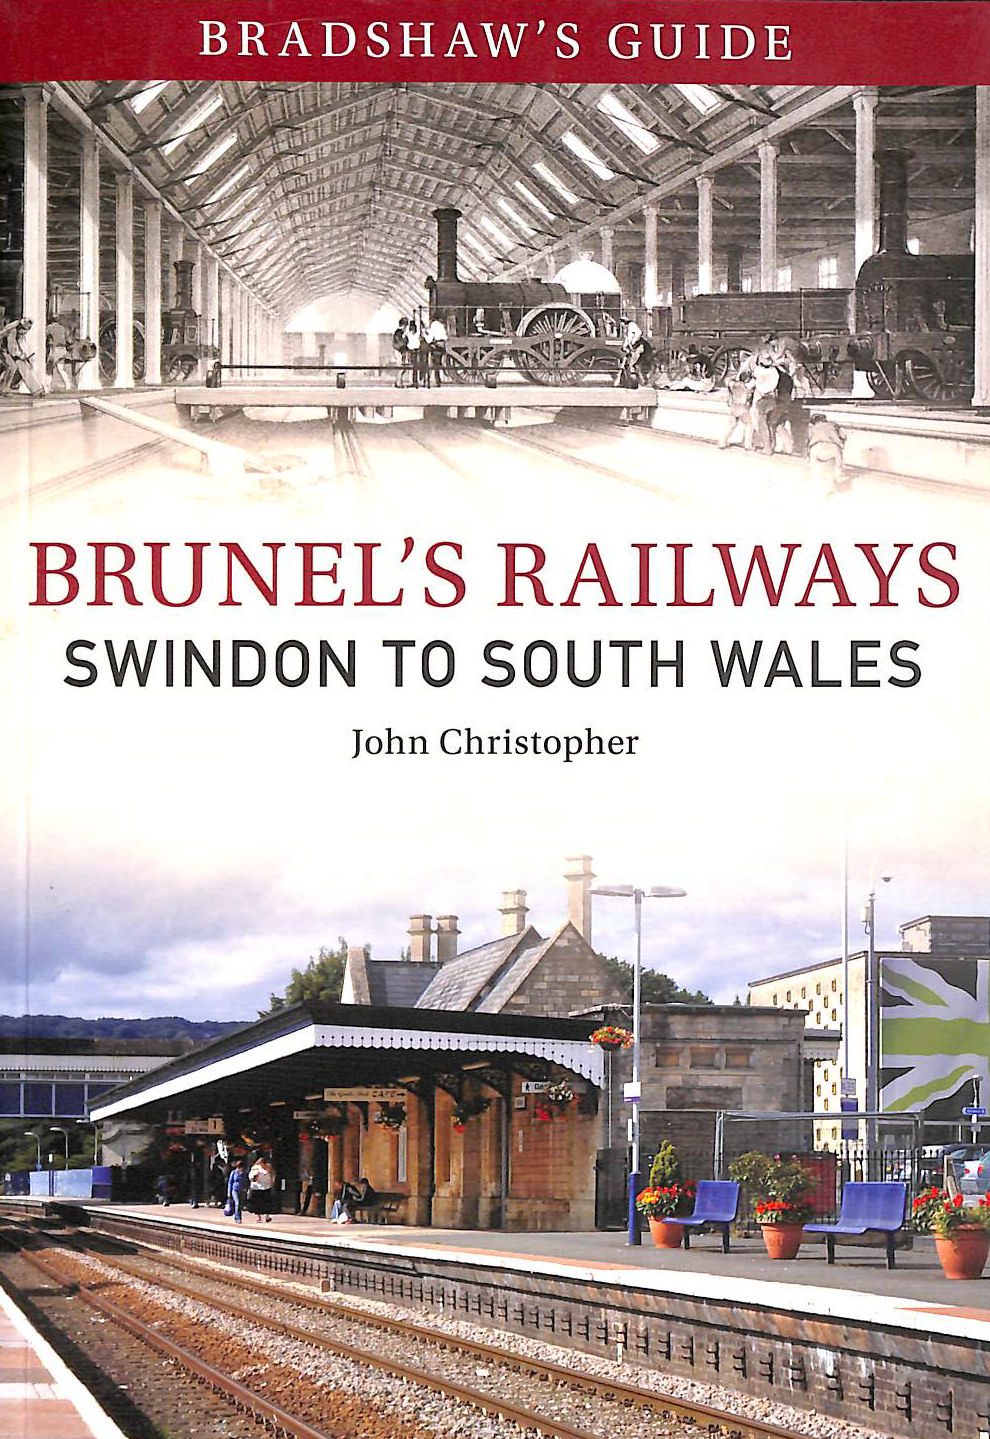 Image for Bradshaw's Guide Brunel's Railways Swindon to South Wales: Volume 2